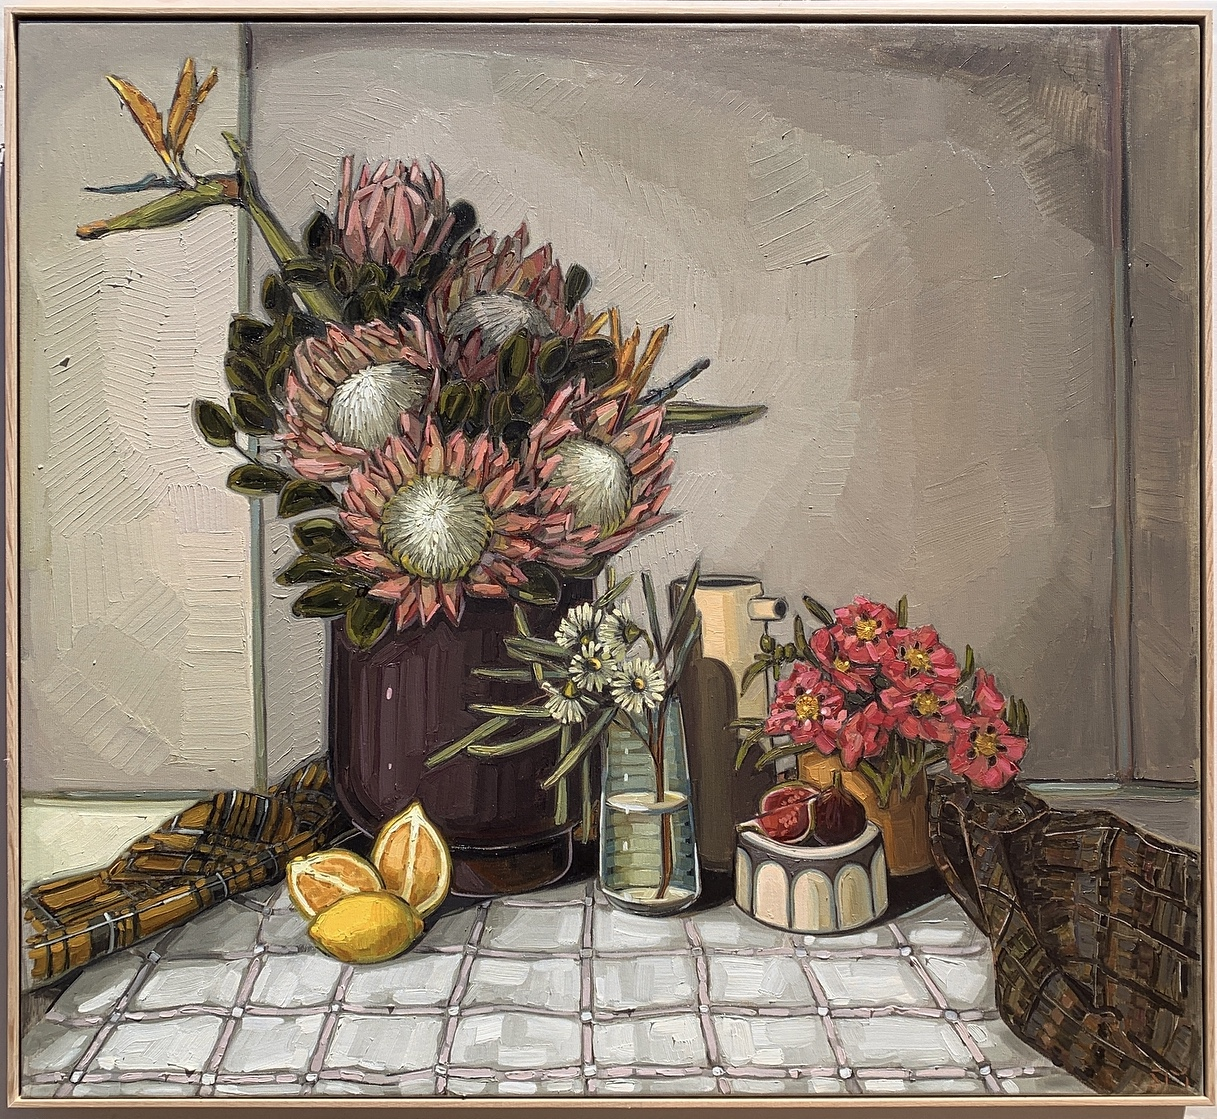 sam michelle 'country proteas & cloth' 1